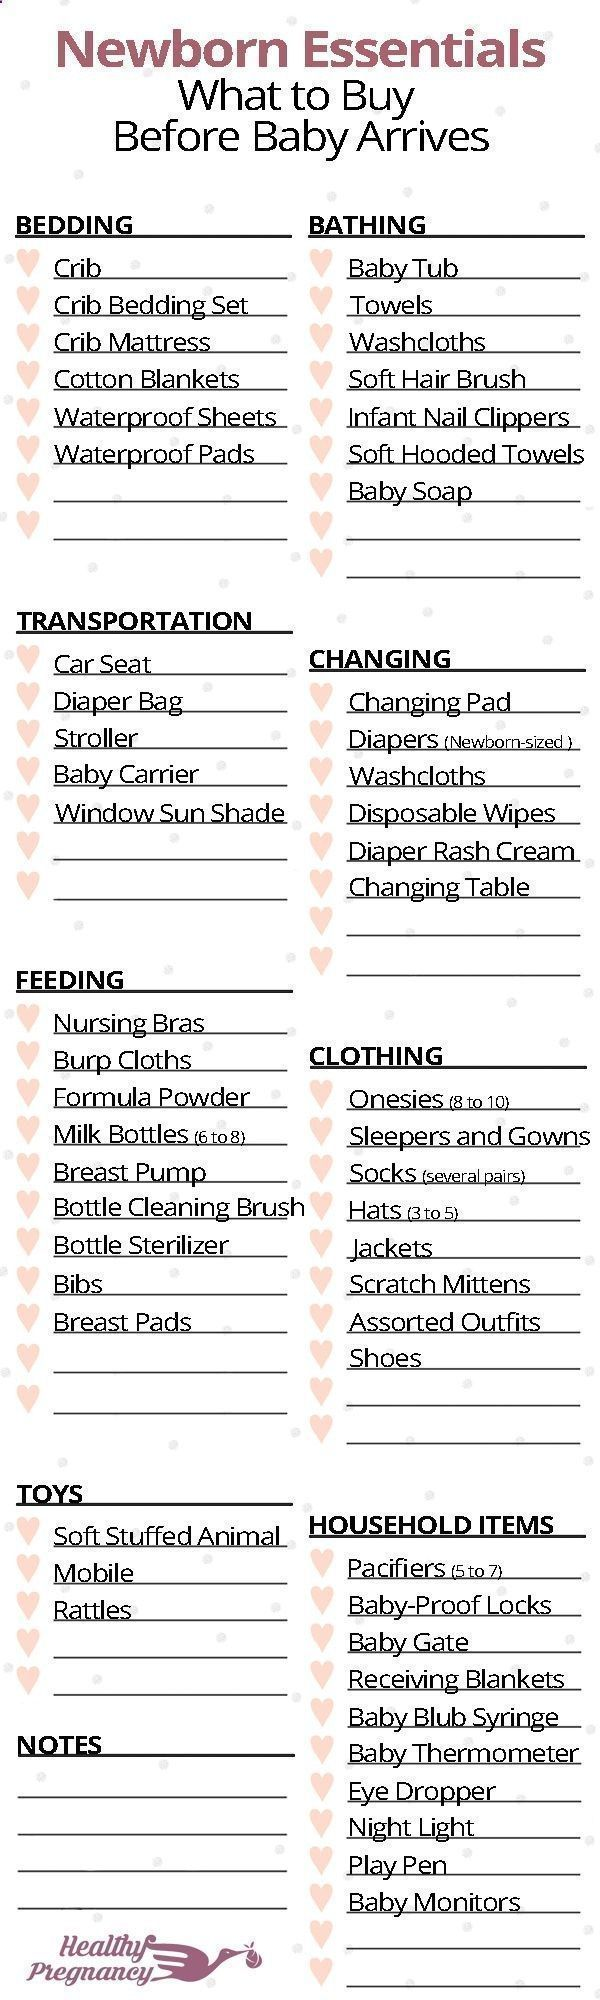 A complete shopping checklist for newborns. Everything you will want to stock up on before baby arrives. #pregnancy   Pregnant   Shopping   Baby Items   Newborn Essentials #girlbabyshowers